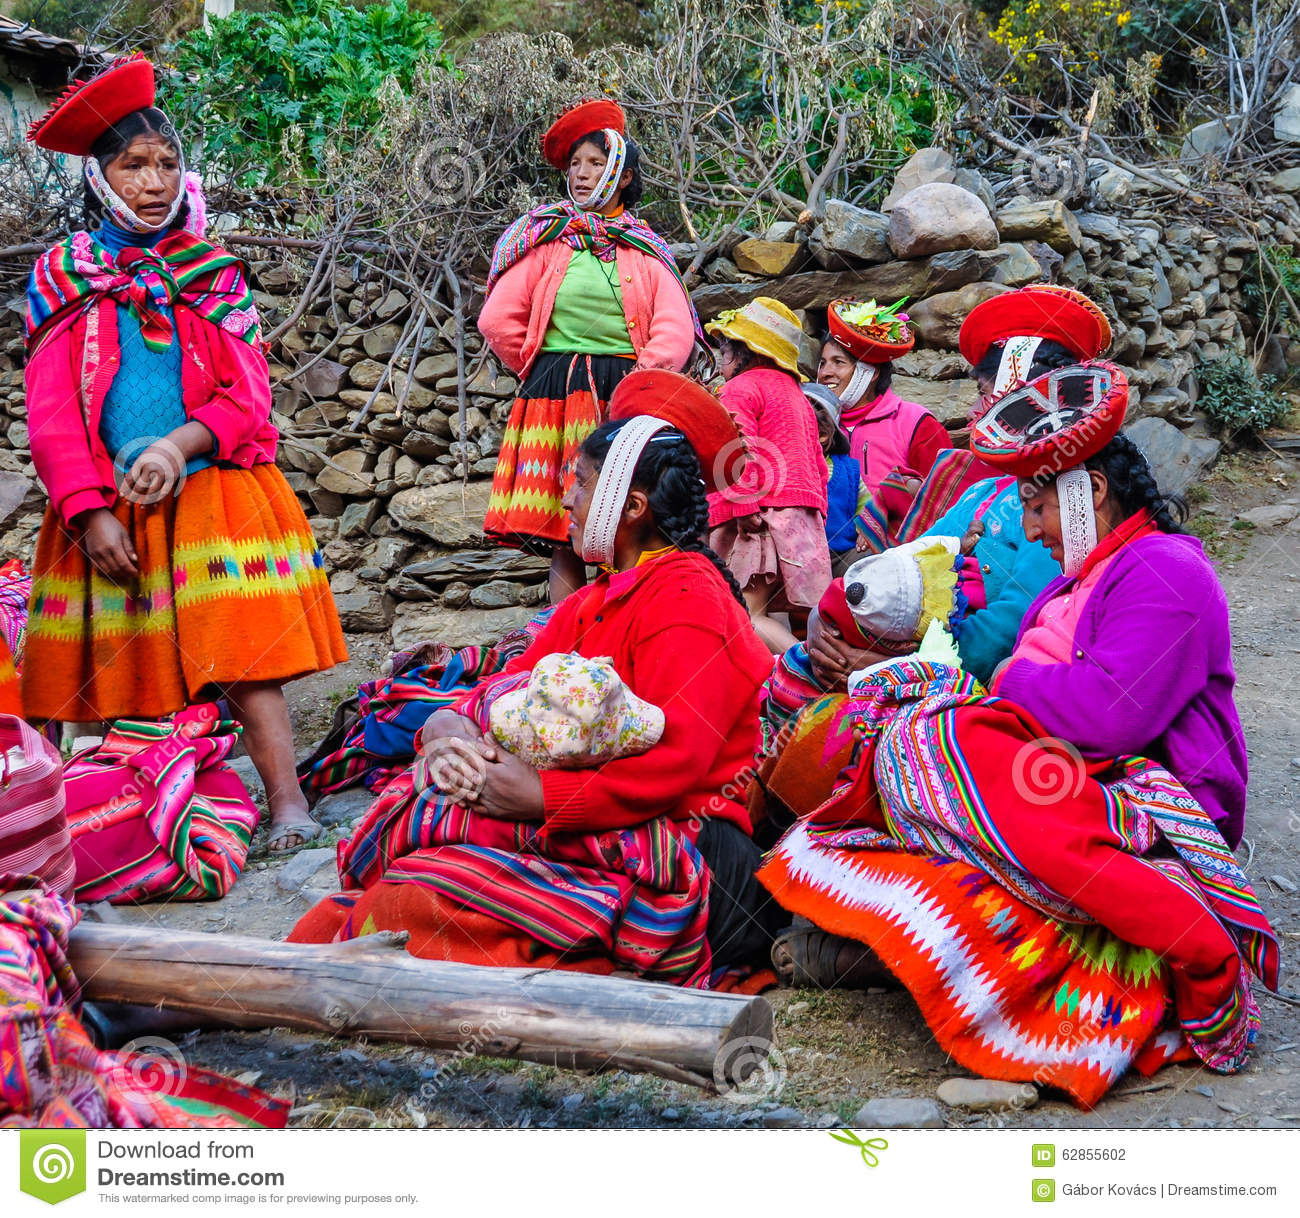 10 Of The Last Tribes In The World